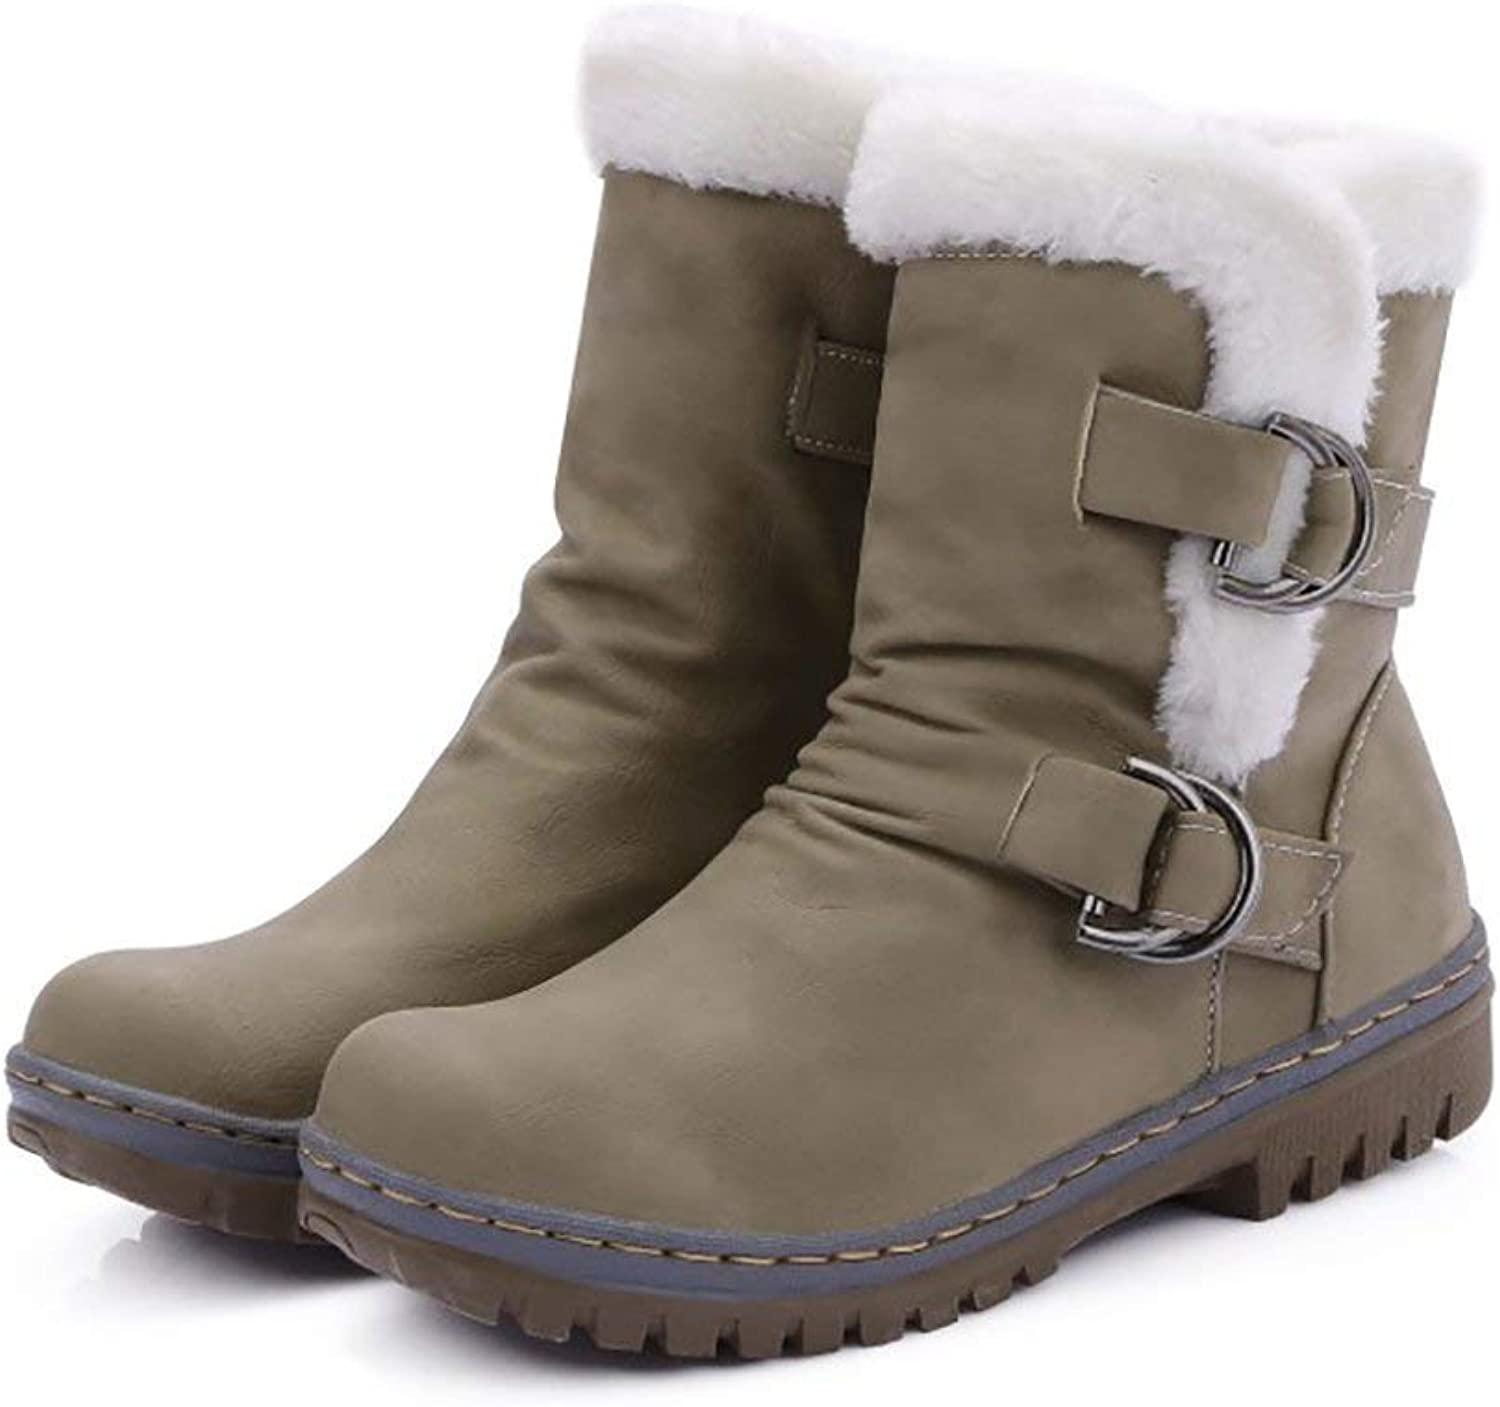 Women Winter Snow Boots Buckles Warm Waterproof Faux Fur Cozy Flat Heels Slip On Ankle Boots